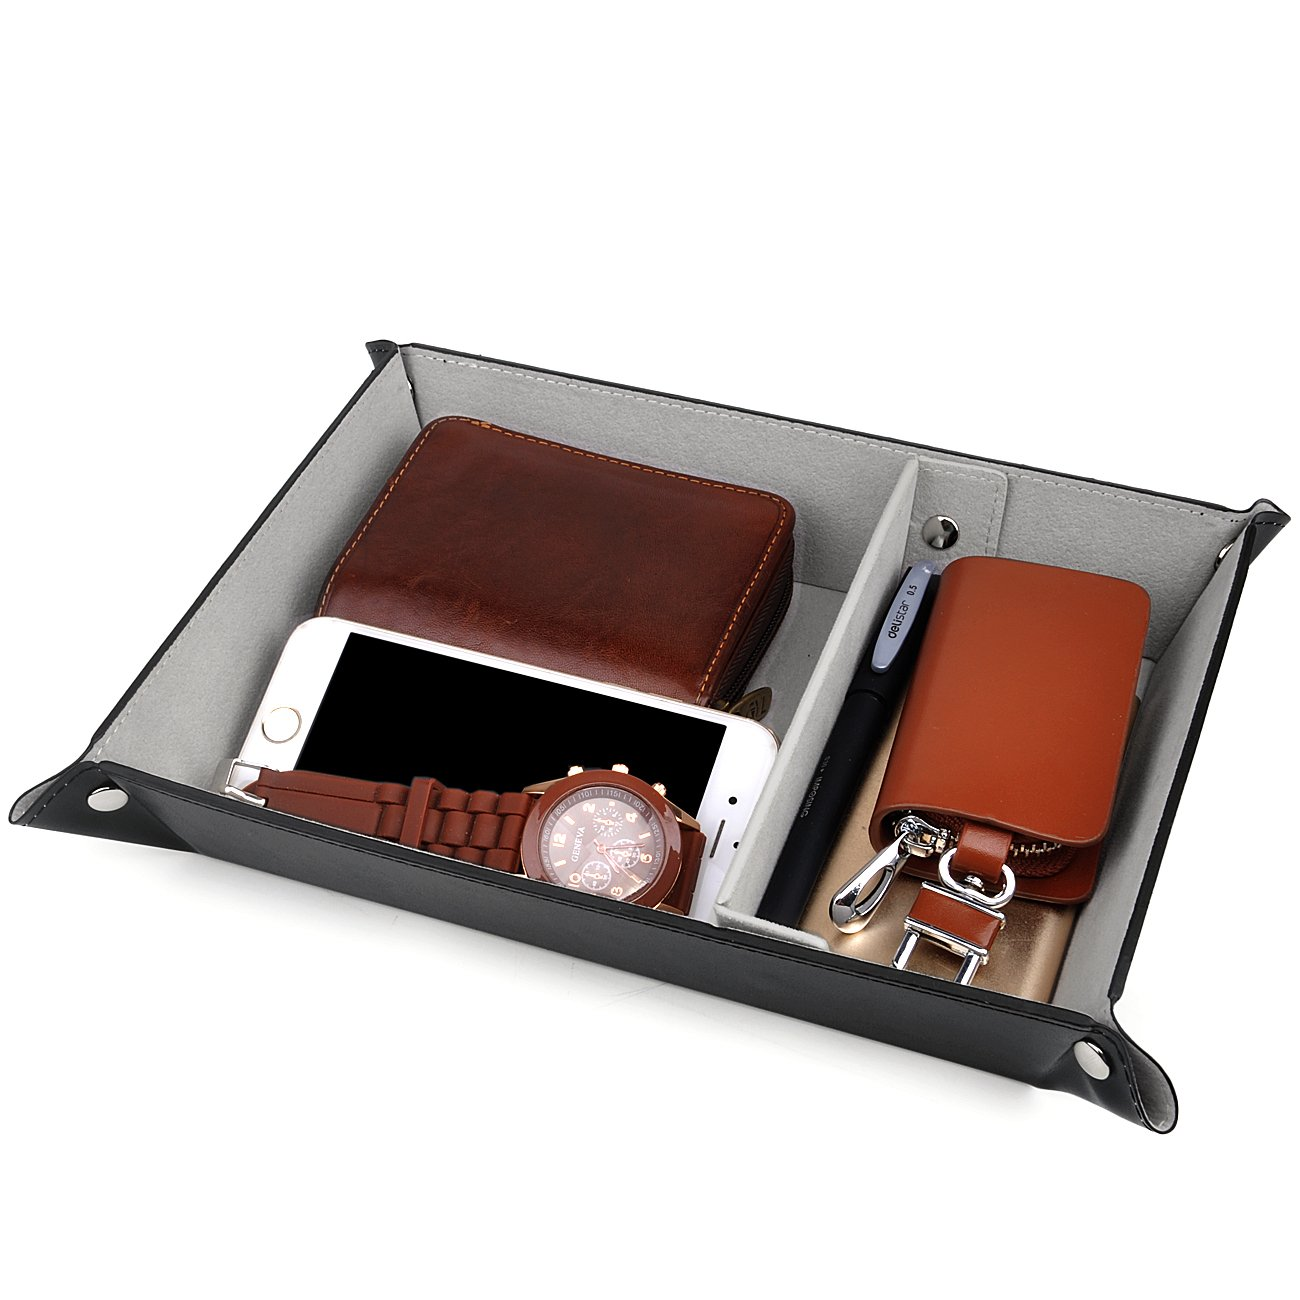 SPSHENG Valet Tray for Storage,PU Leather Jewelry Nightstand Organizer Watch Coin Change Key Tray Box Black